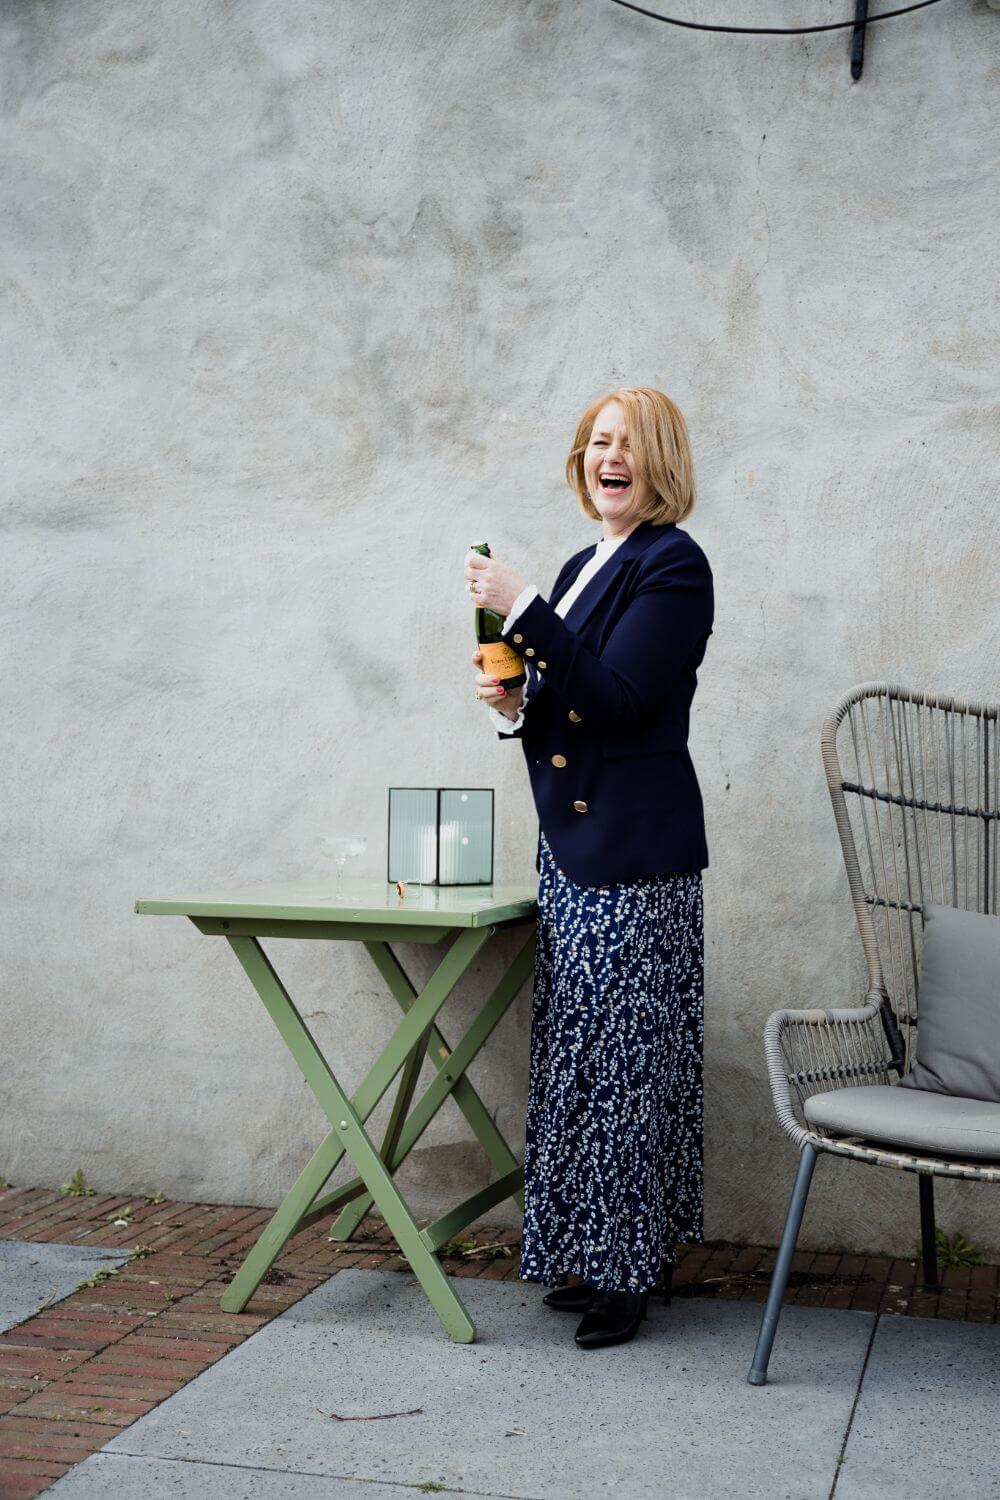 Claudia Vesters Champagne Vrouw in Balans Testimonials Reviews